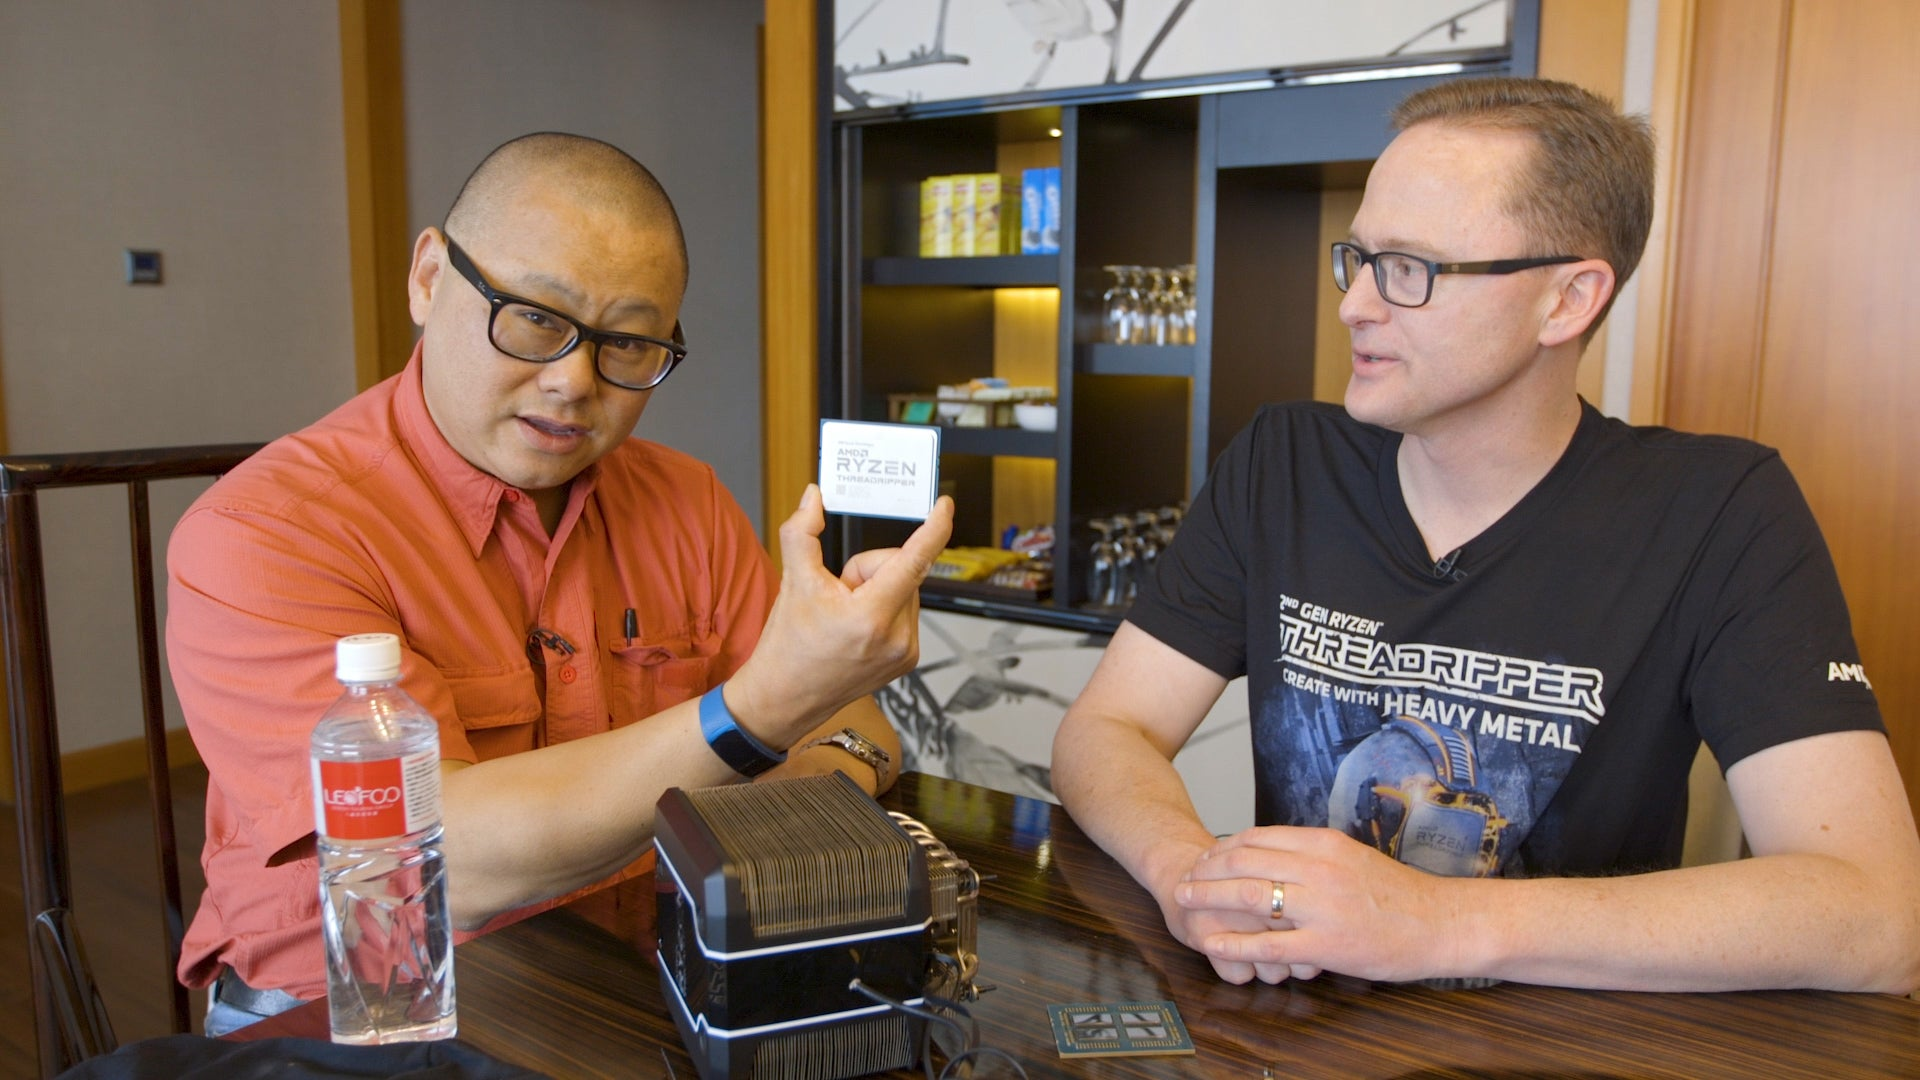 Gordon Mah Ung and Jim Anderson discuss Threadripper Gen 2